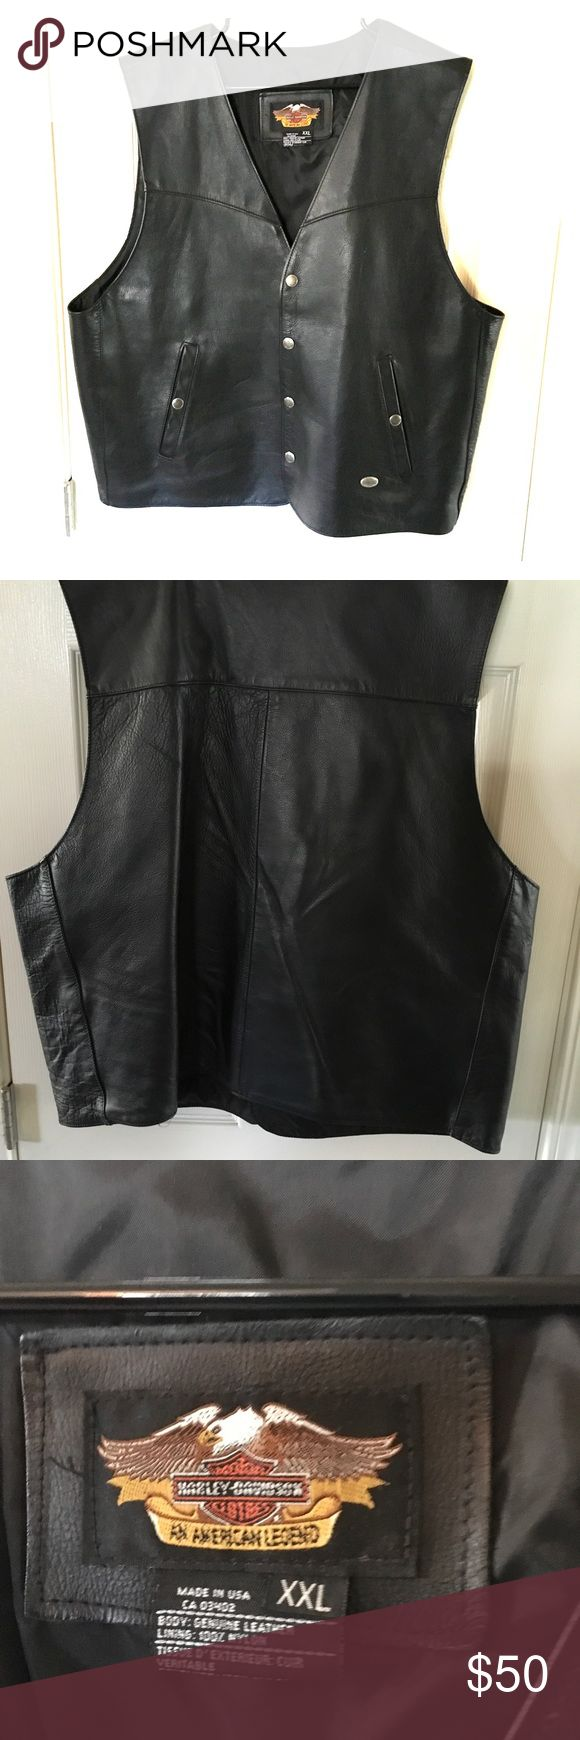 """Harley Davidson  Vest & Leather King Chaps Like new 2XL black leather Harley Davidson motorcycle vest & 4XL black Leather King chaps. (4XL = 48"""" waist). No spots, wear or tear on either item. Would consider selling separately for $30 each item. Great buy for motorcycle weather coming up! Harley Davidson & Leather King Other"""